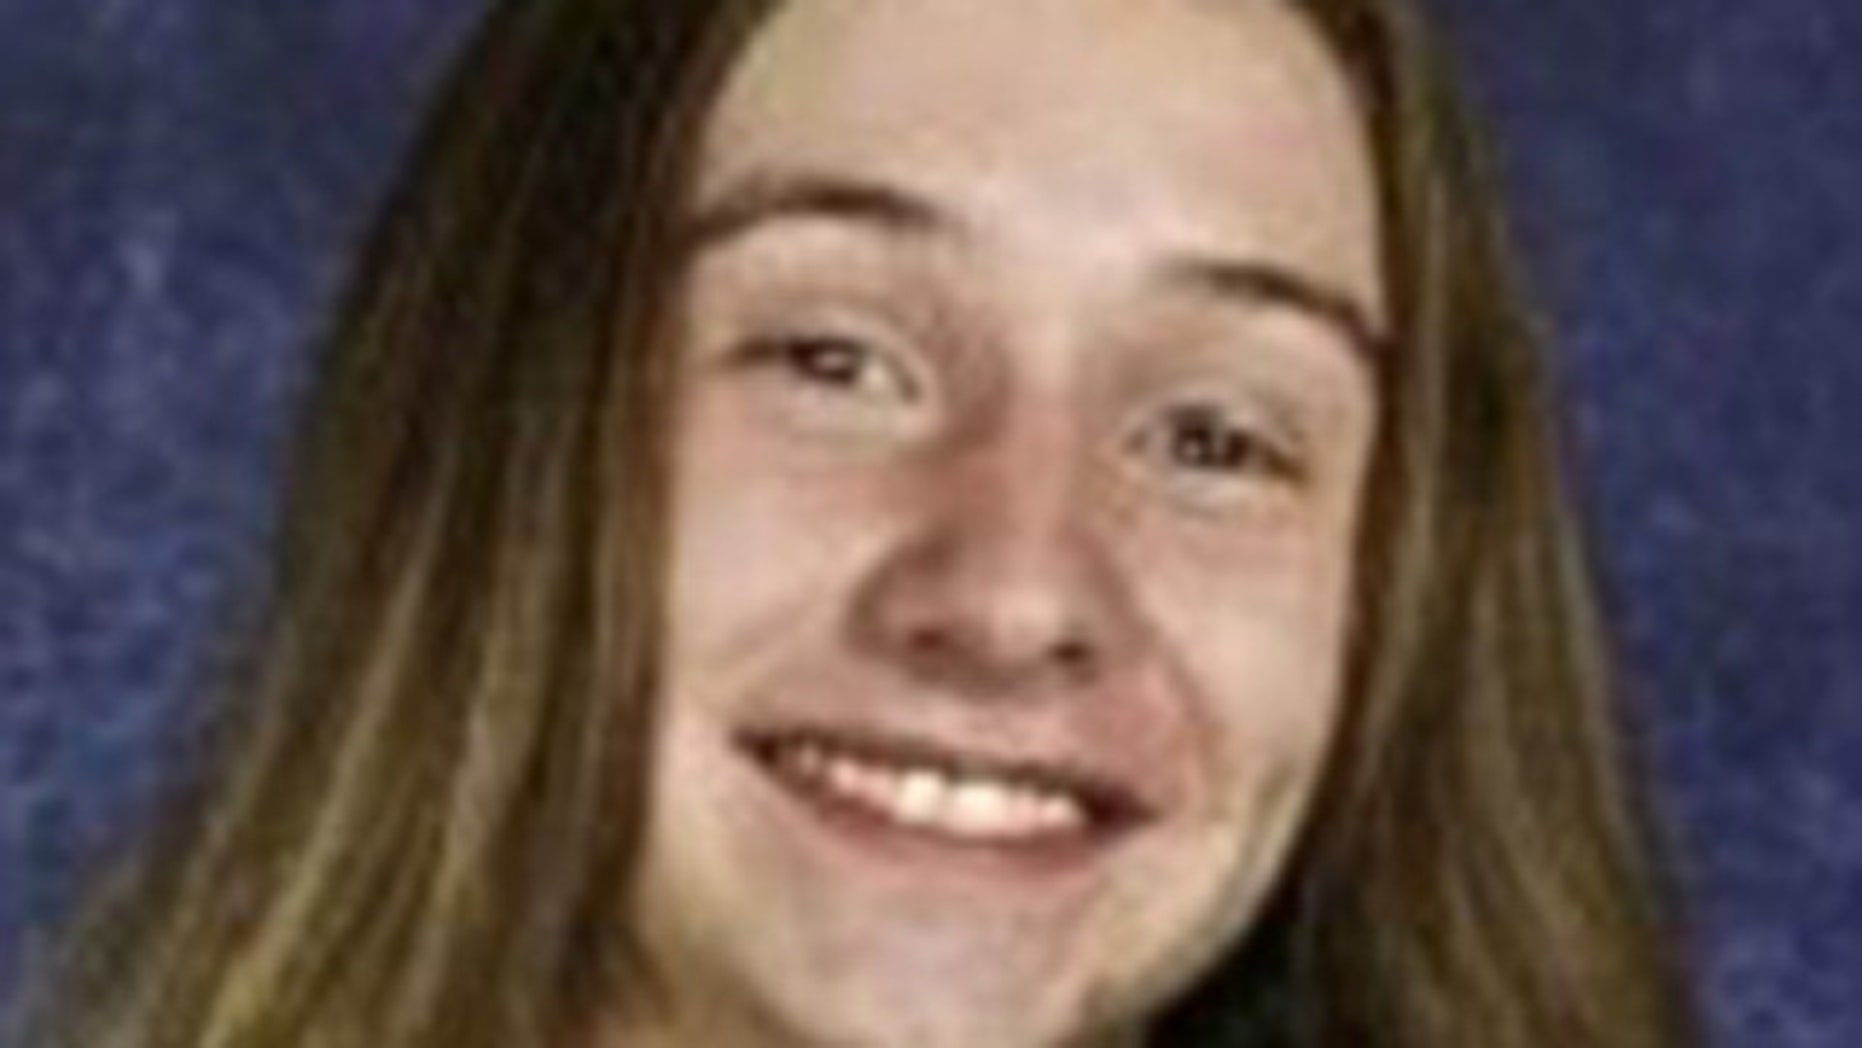 This undated photo shows Joshua Maddux, whose remains were identified Sept. 30, 2015, more than seven years after he disappeared. (Colorado Bureau of Investigation)